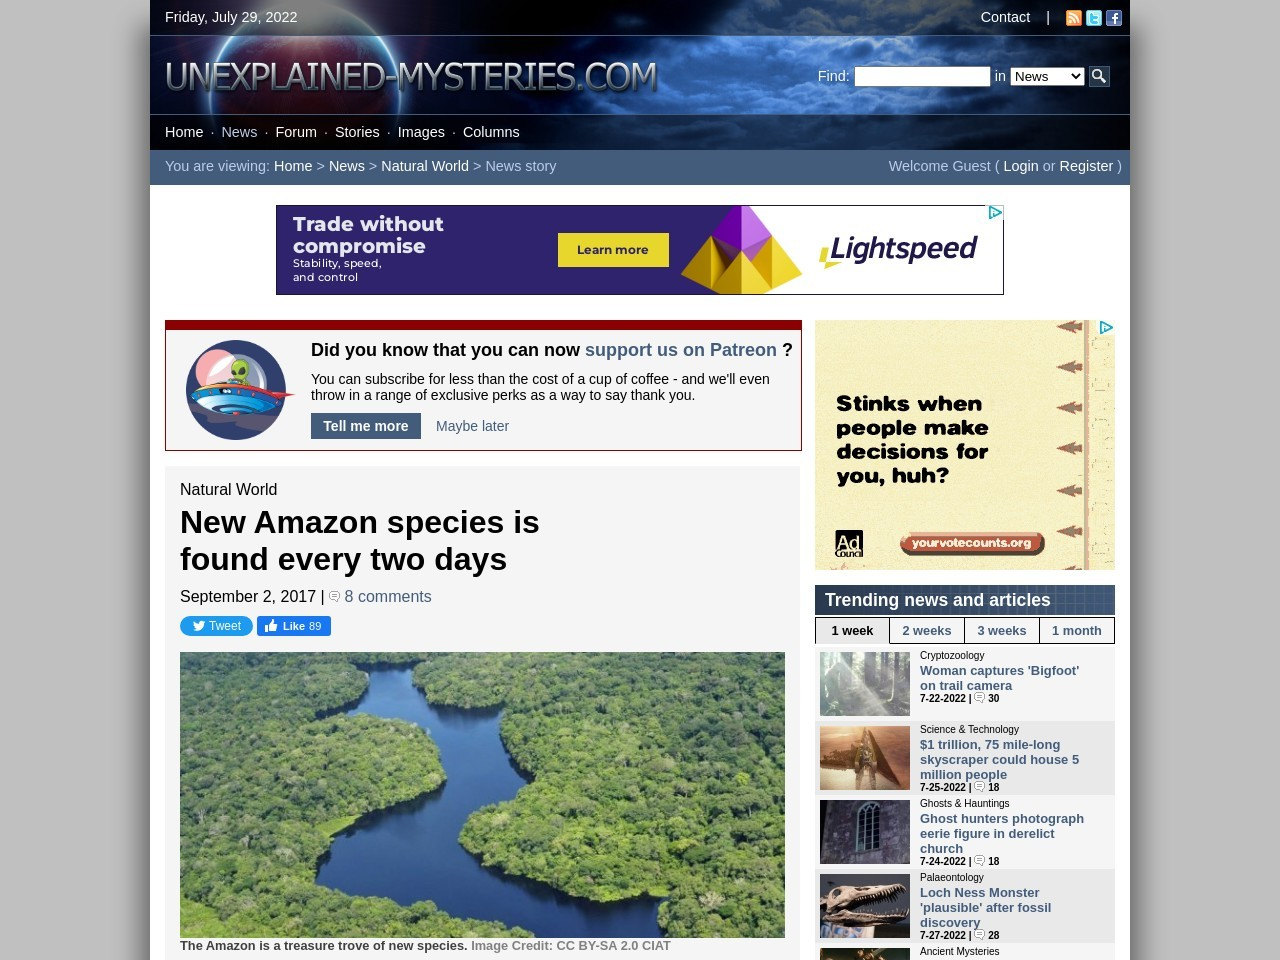 New Amazon species is found every two days